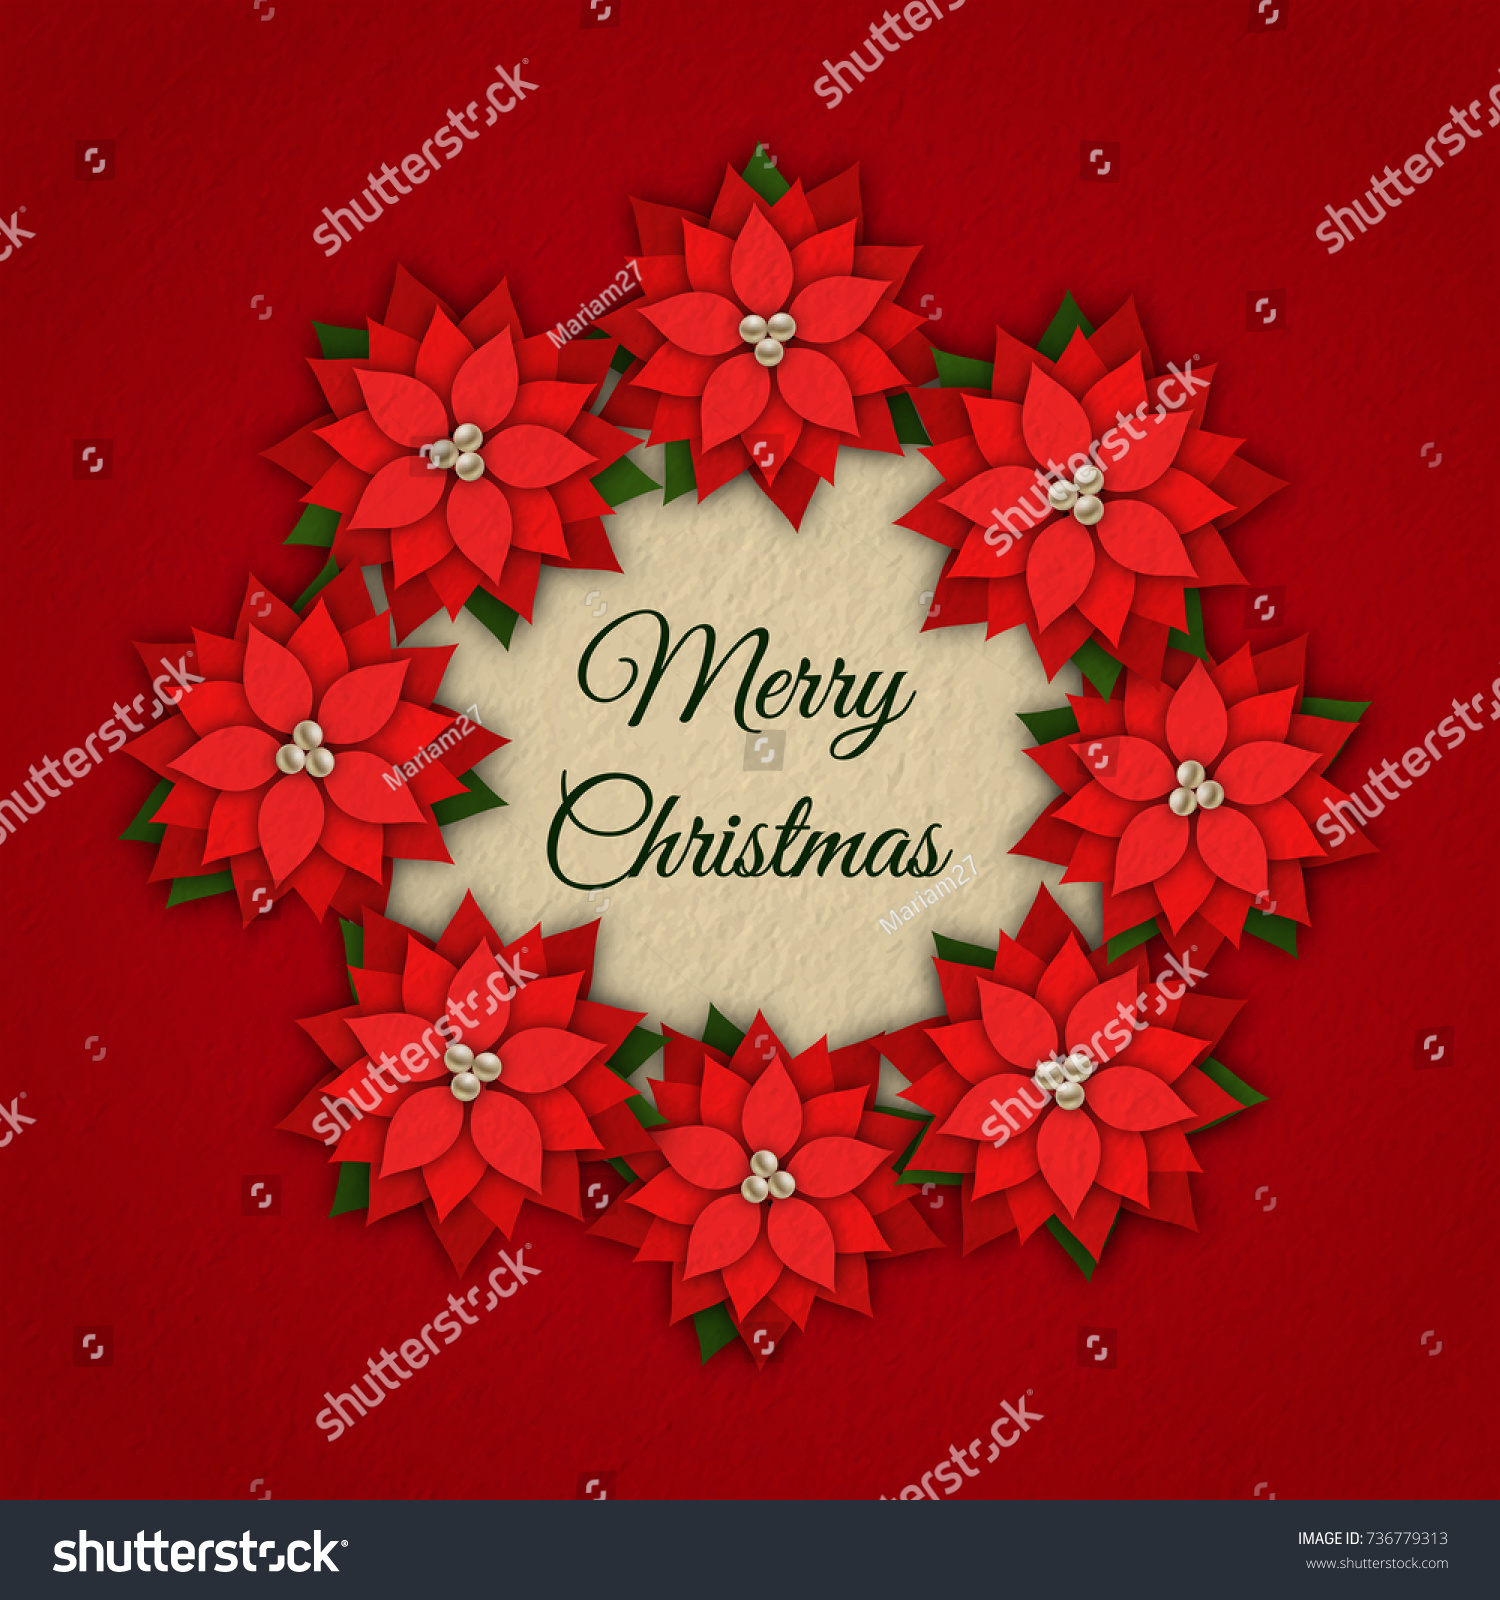 Merry Christmas Vector Background Greeting Card Stock Vector